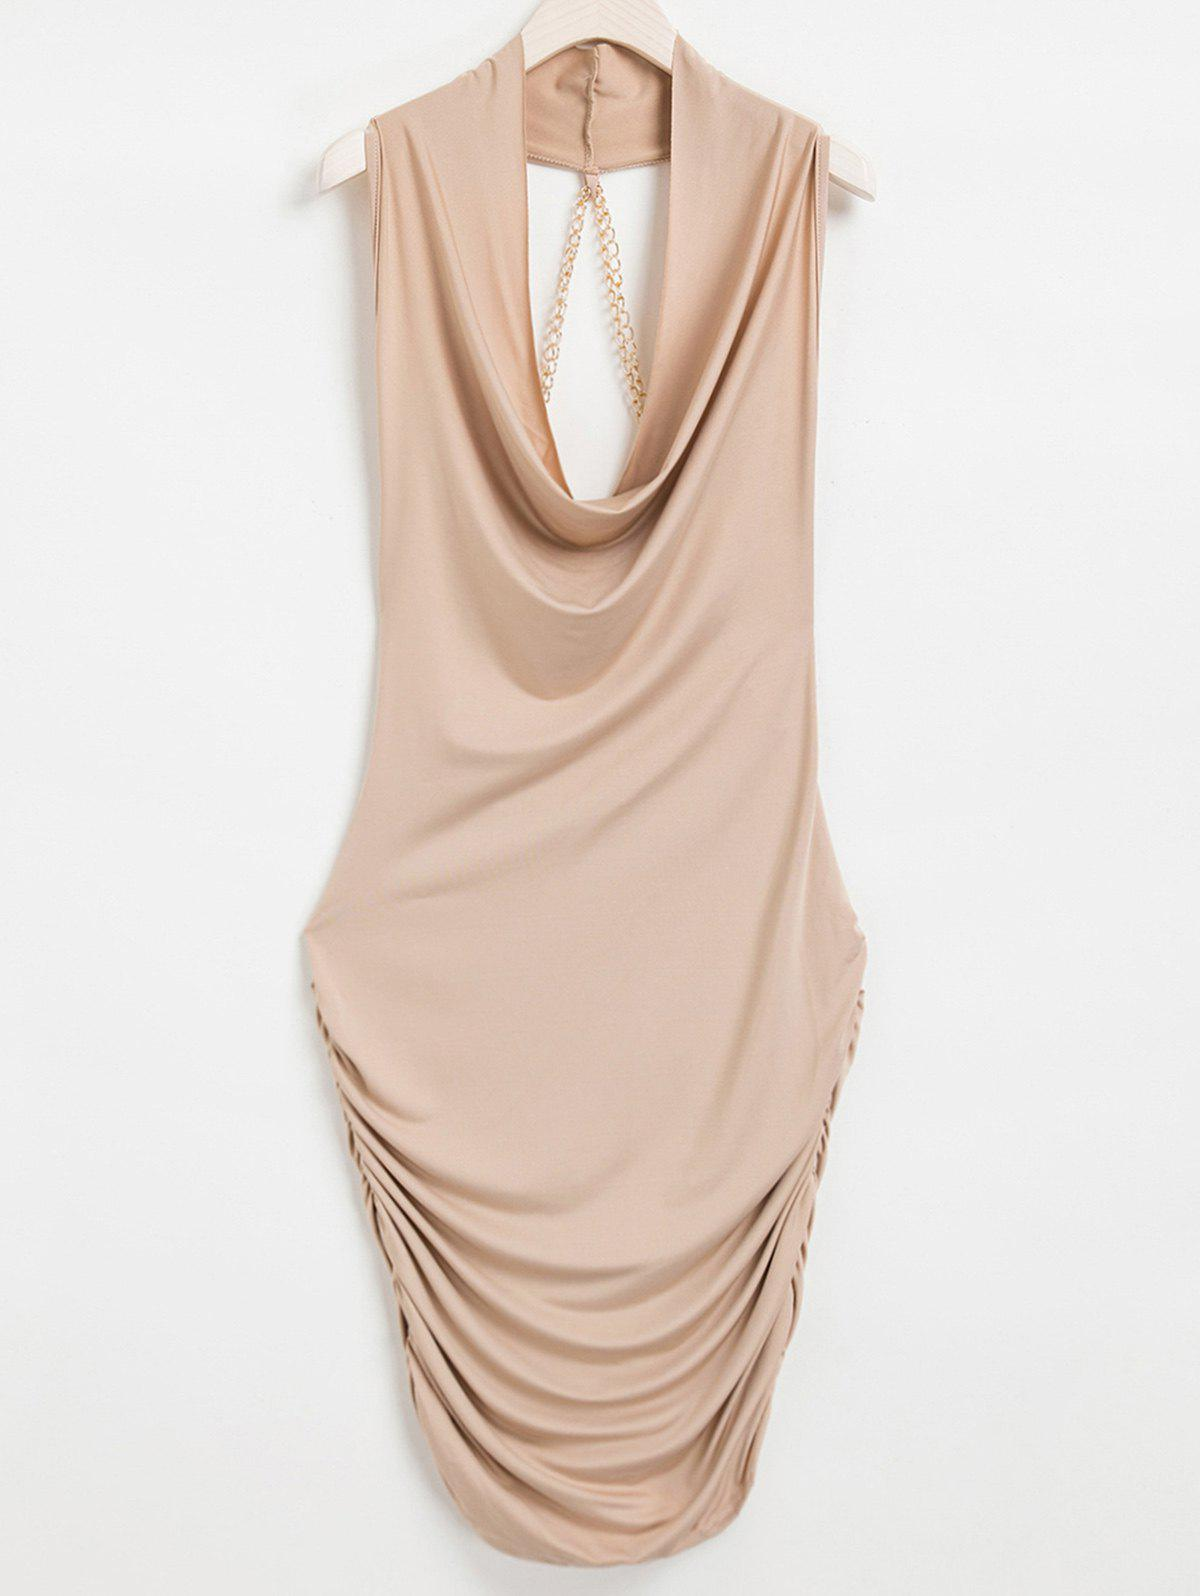 где купить Sexy Style Cowl Neck Sleeveless Solid Color Draped Chain Embellished Women's Dress дешево